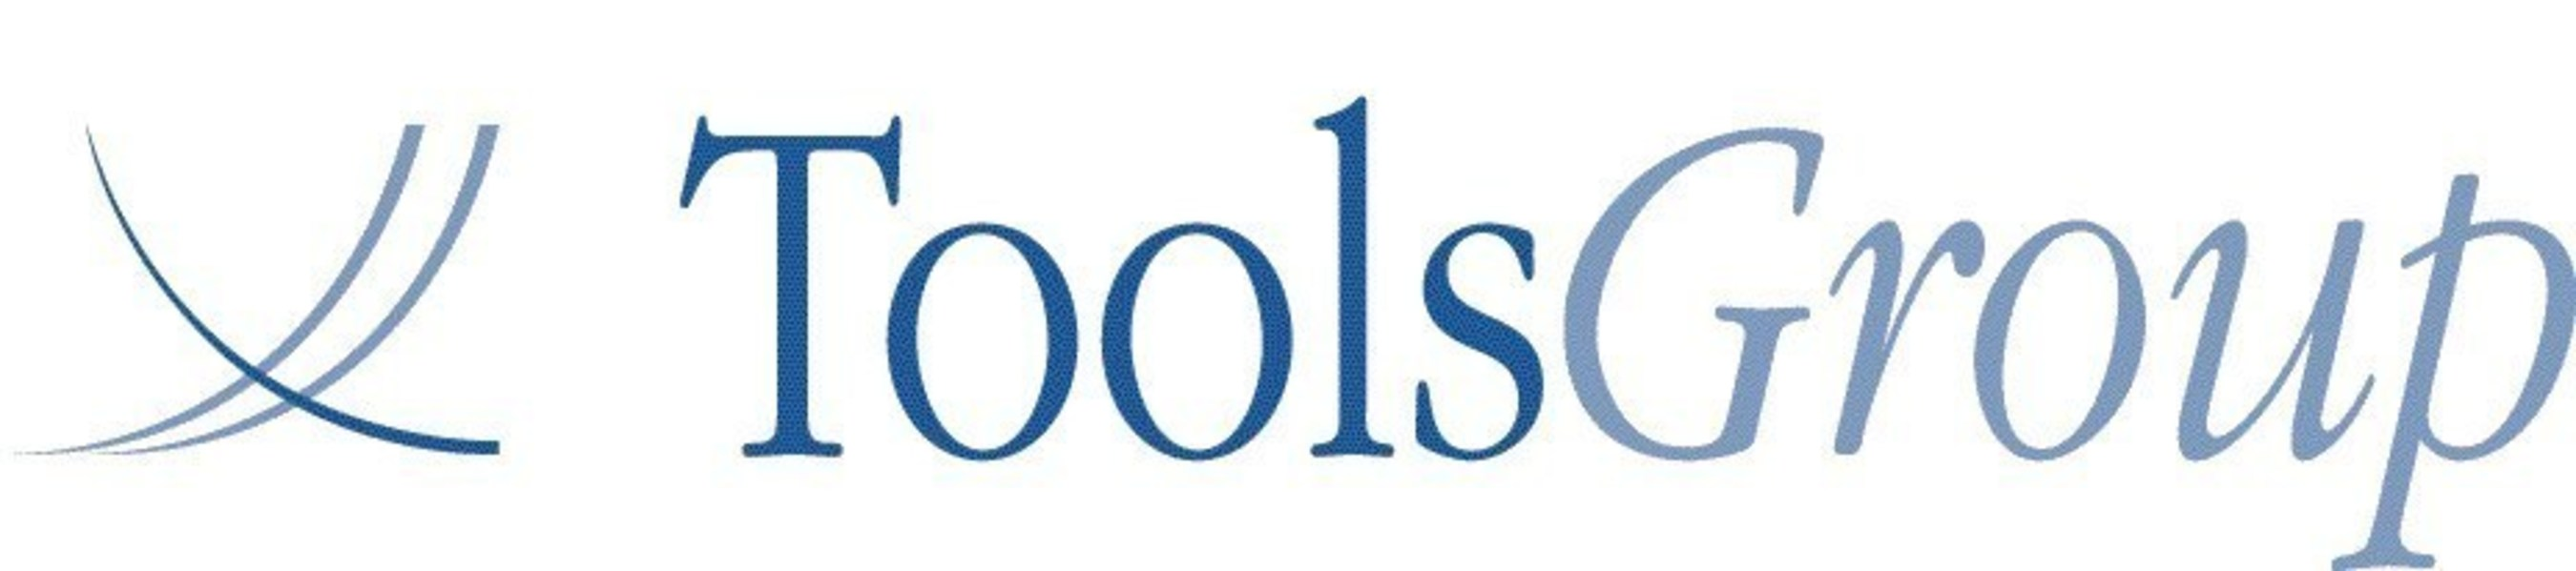 ToolsGroup SO99+ supply chain planning software achieves certified integration with SAP® ERP